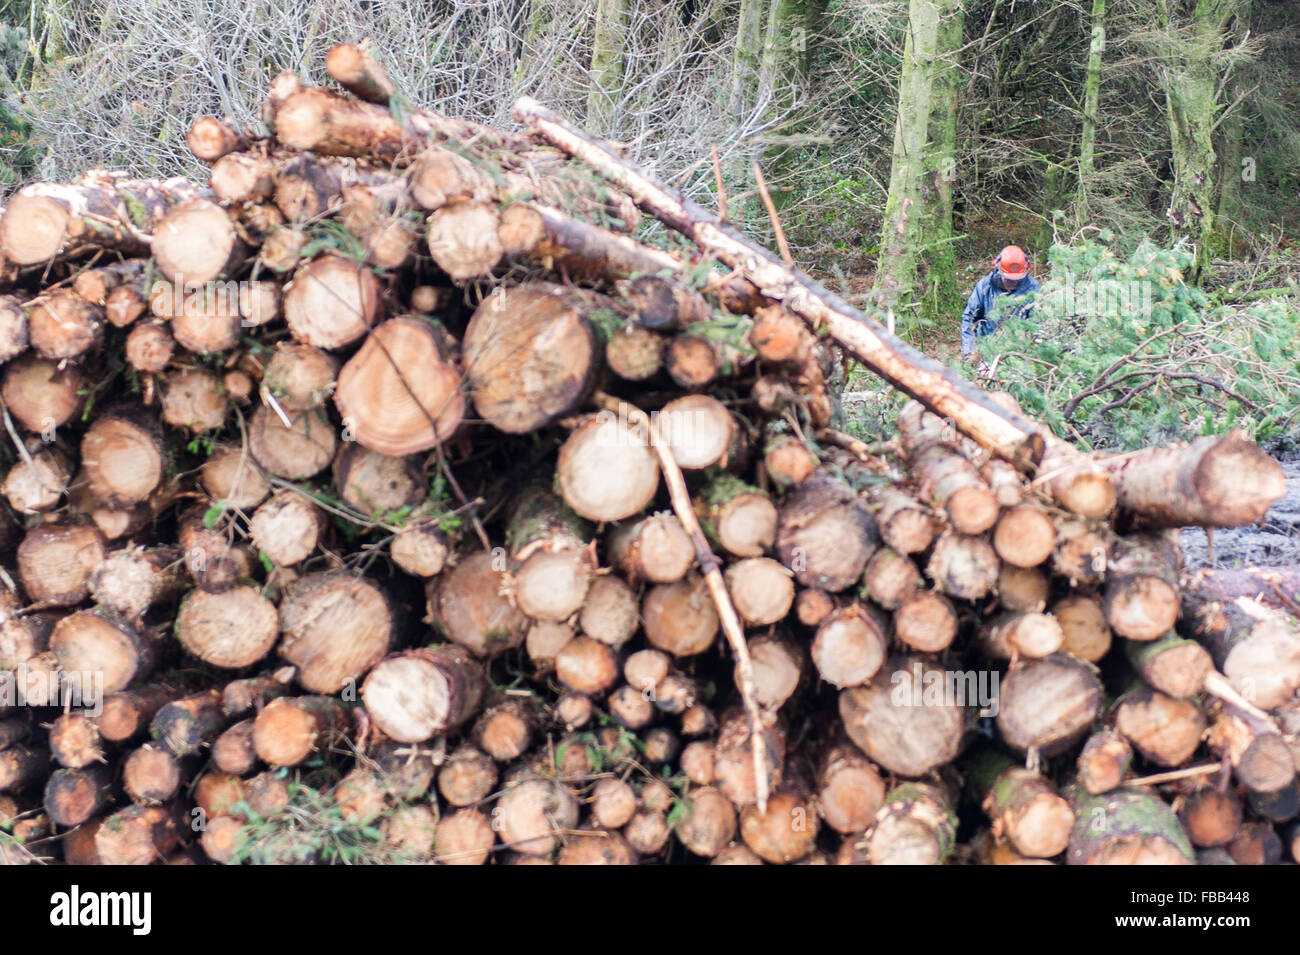 Ballydehob, Ireland. 13th Jan, 2016.  A Coillte timberjack works in Ballydehob Forest behind a pile of already felled Stock Photo